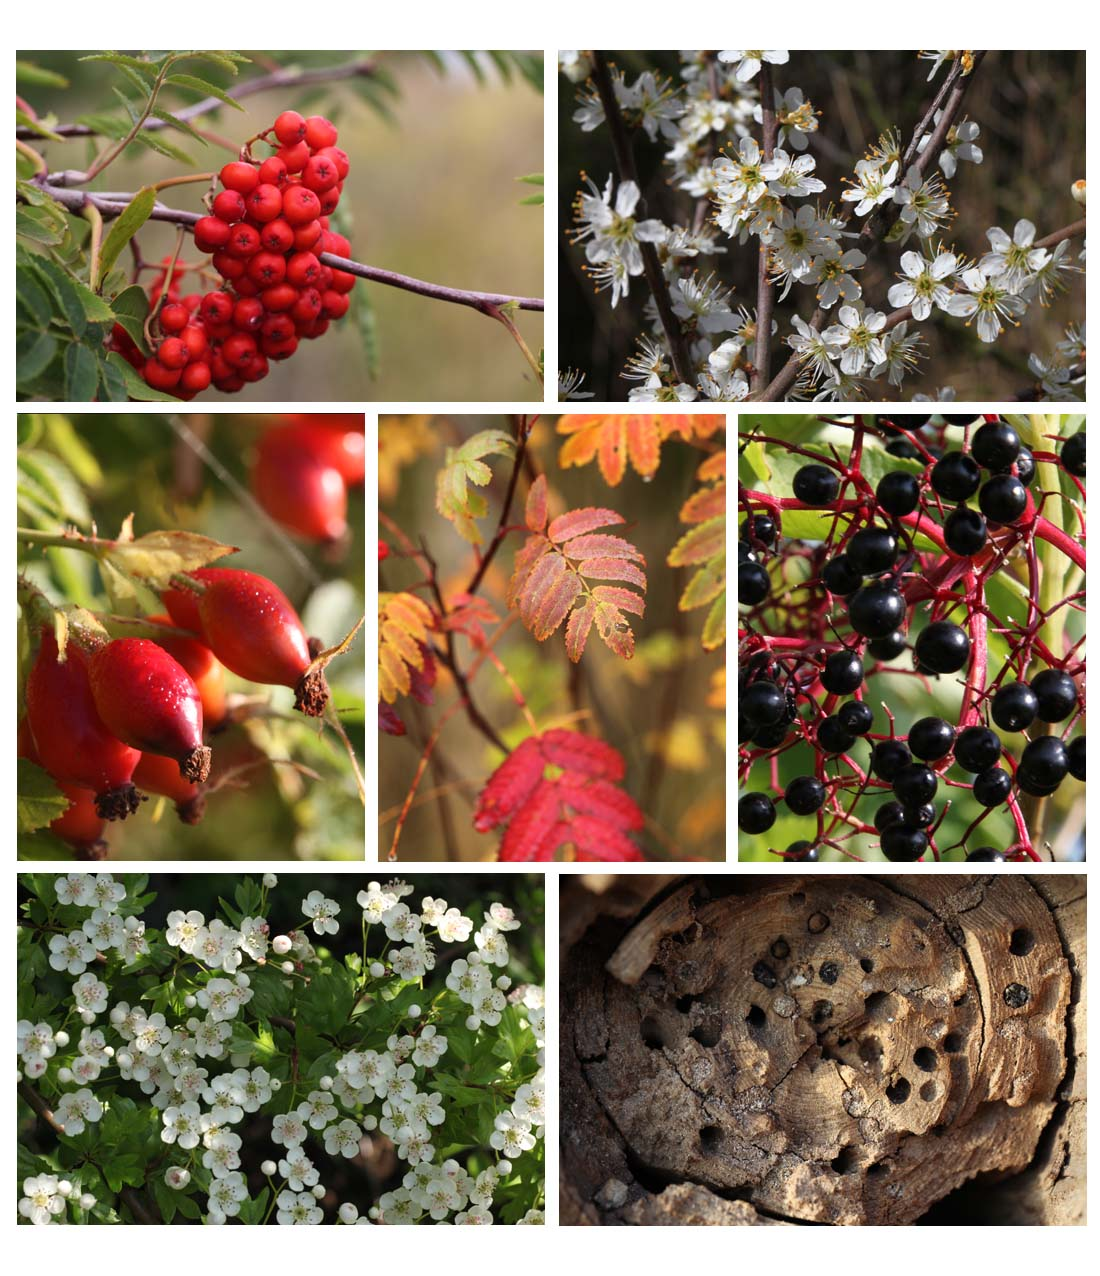 Hedge and tree - (upper) rowan berries, blackthorn flower, (middle) rose hips, autumn leaf, elder berries, (lower) hawthorn flower, dead trunk with insect nest-holes (Living Field collection)